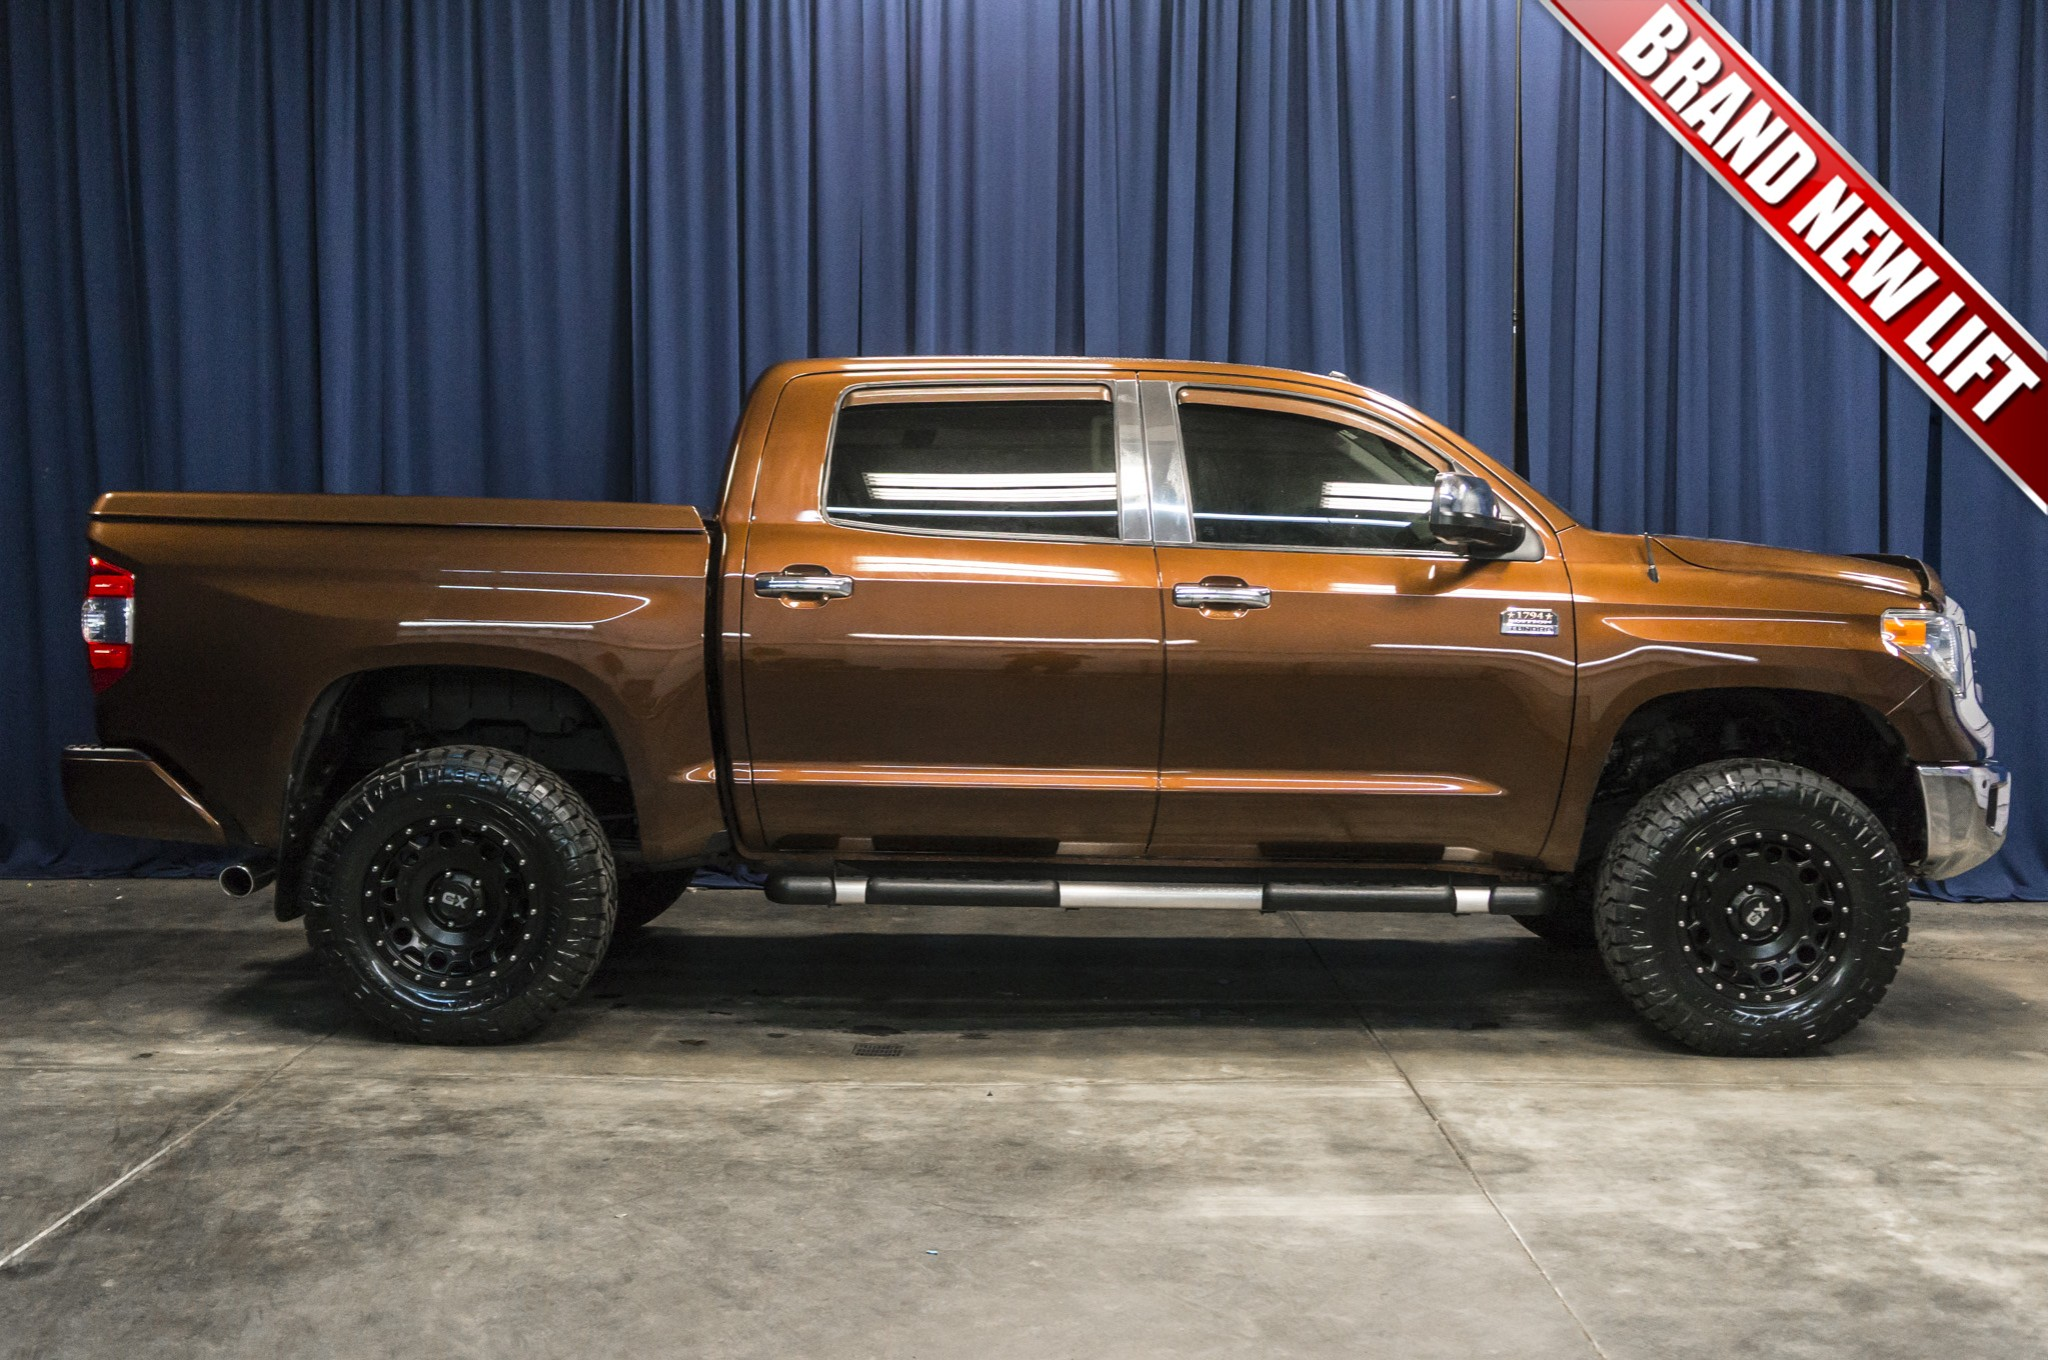 Used Lifted 2014 Toyota Tundra 1794 Edition 4x4 Truck For